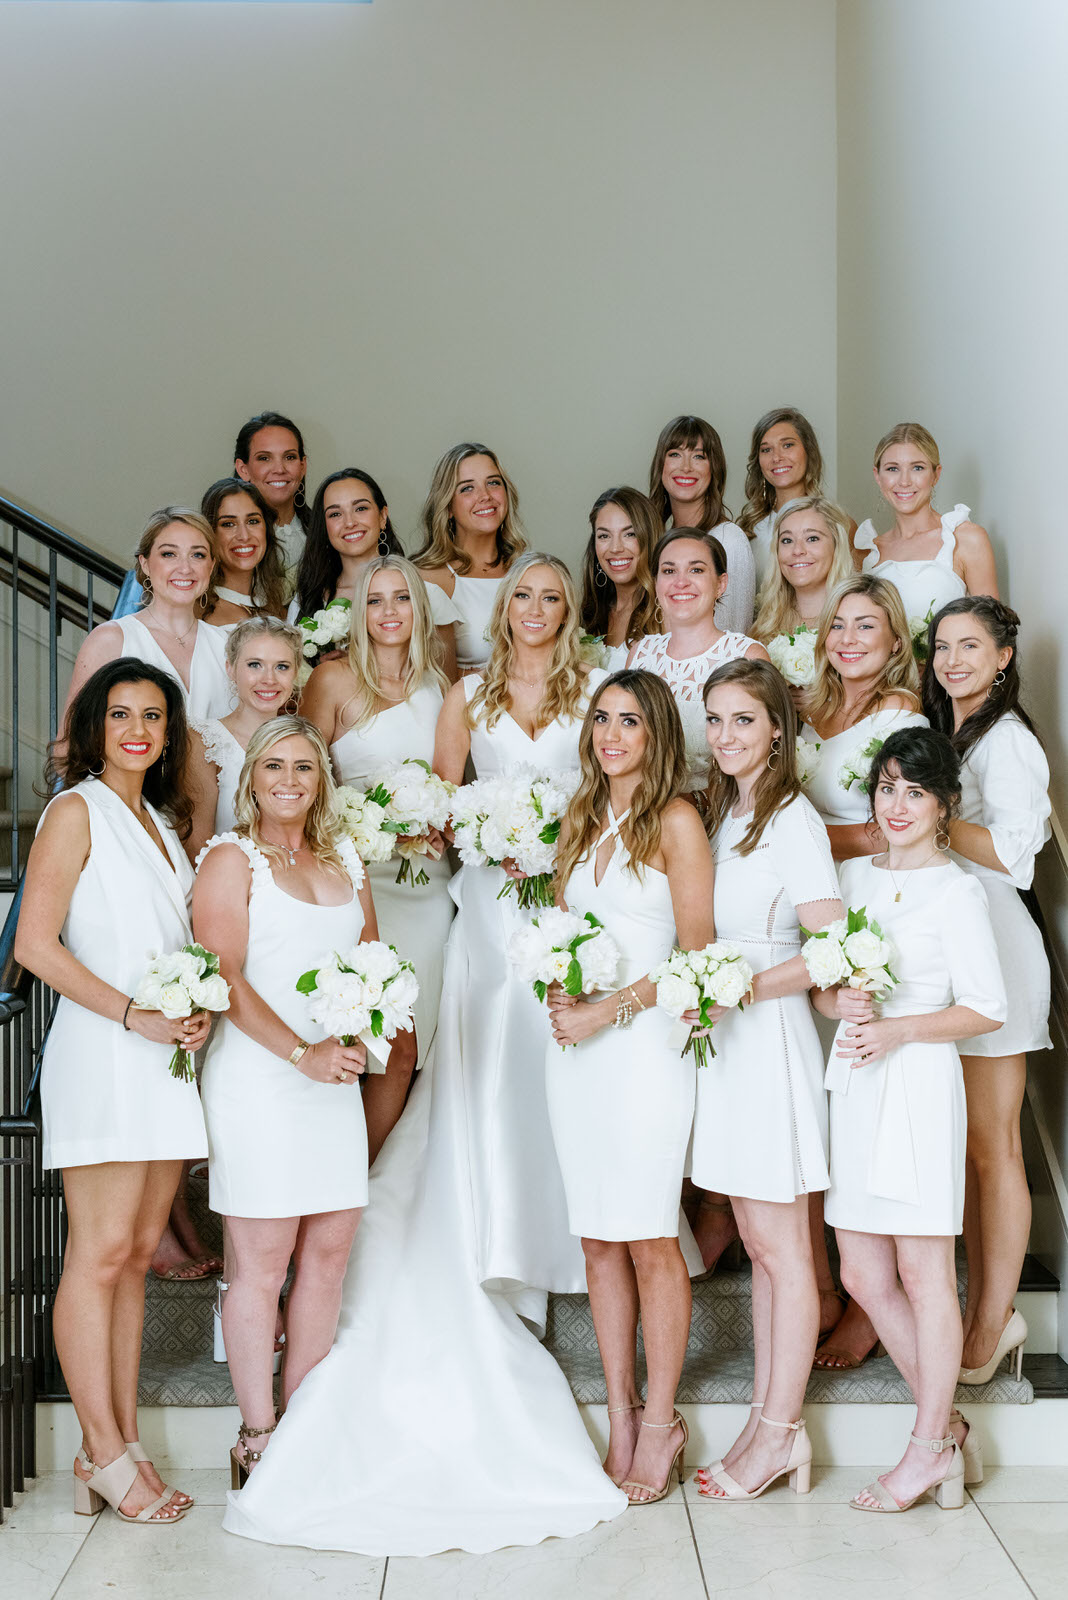 All white bridal party. Bride and bridesmaids. Photography:  Josh & Dana Fernandez , Event Design & Floral:  Maxit Flower Design , Event Planner: Emily Moise,  Keely Thorne Events